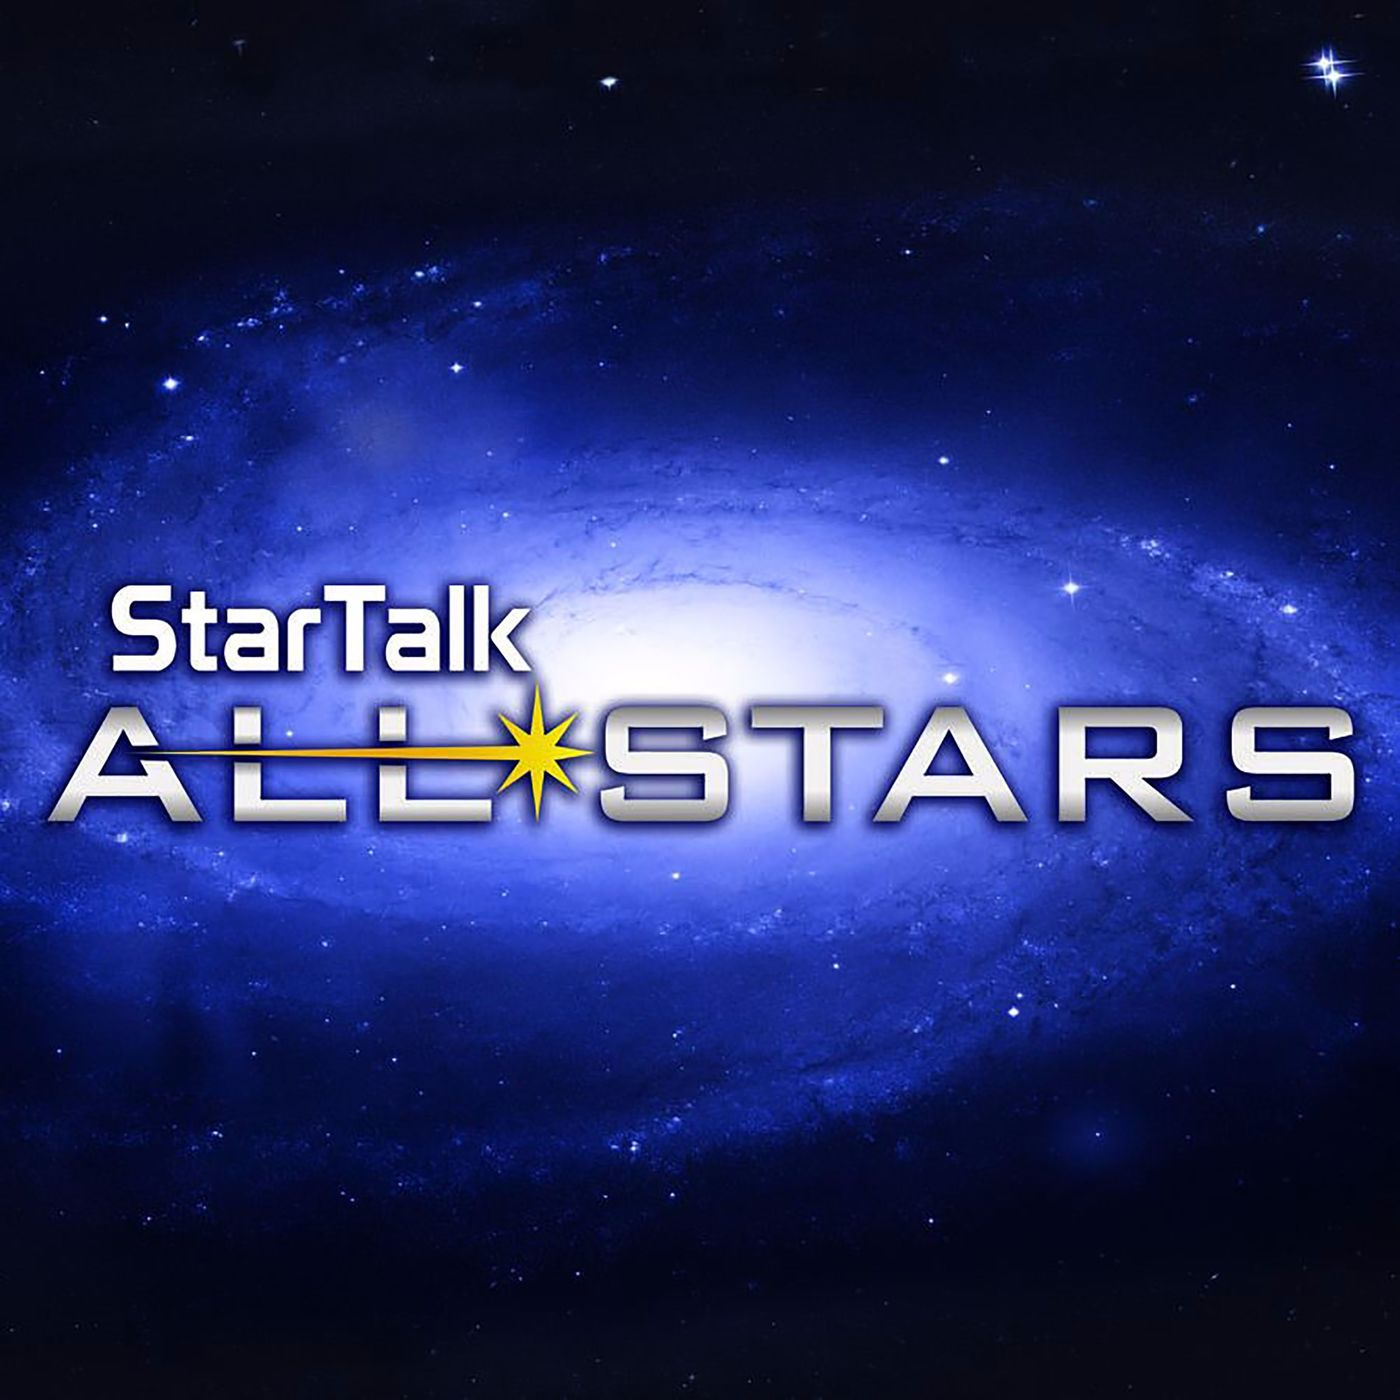 StarTalk All-Stars